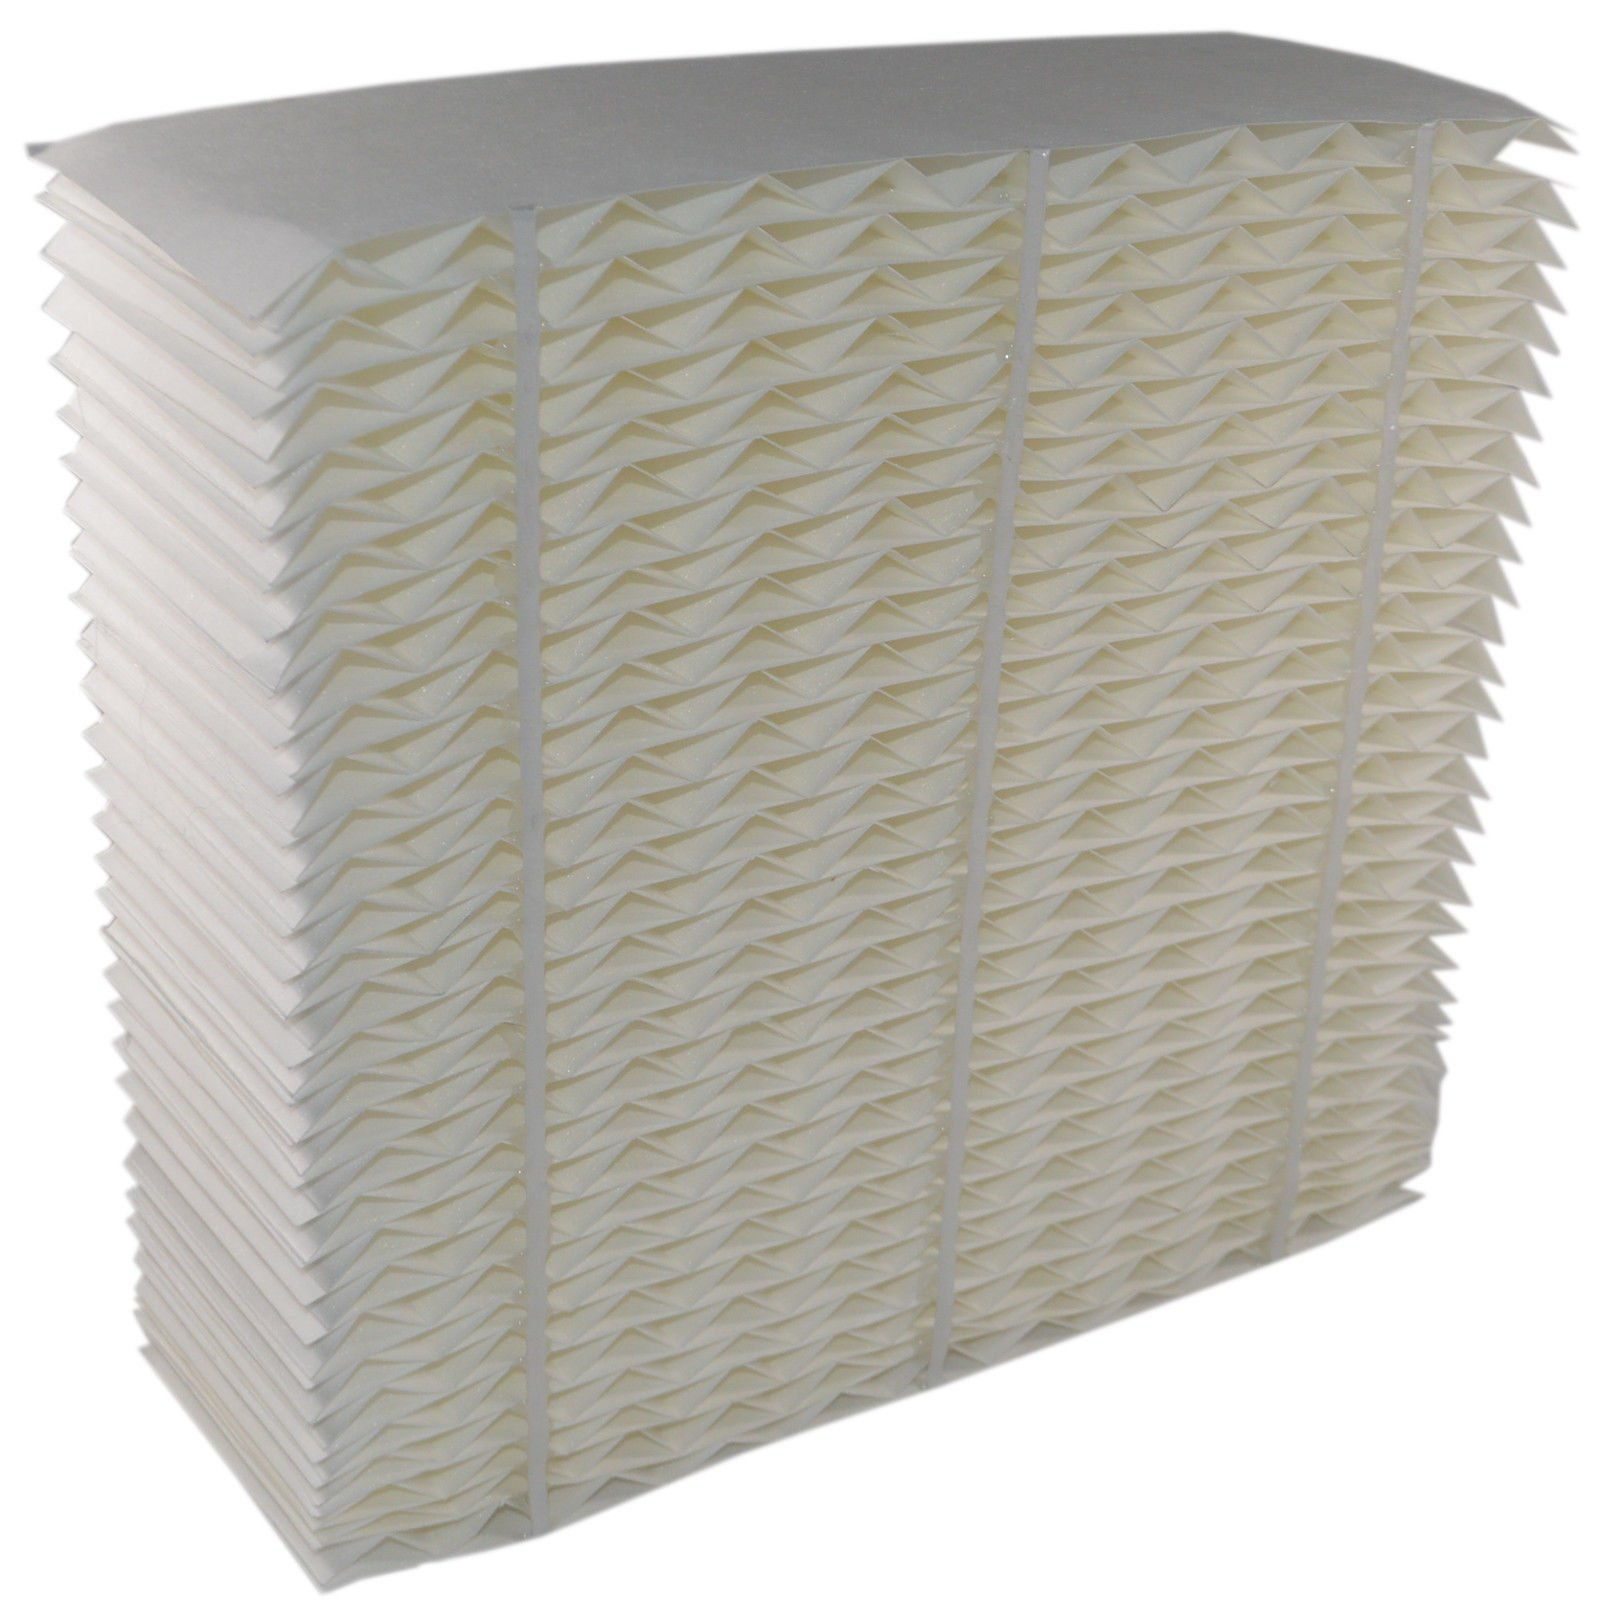 ZIBEE Humidifier Filters for AirCare 1043 Super Wick Bemis Essick Air (1 Pack)